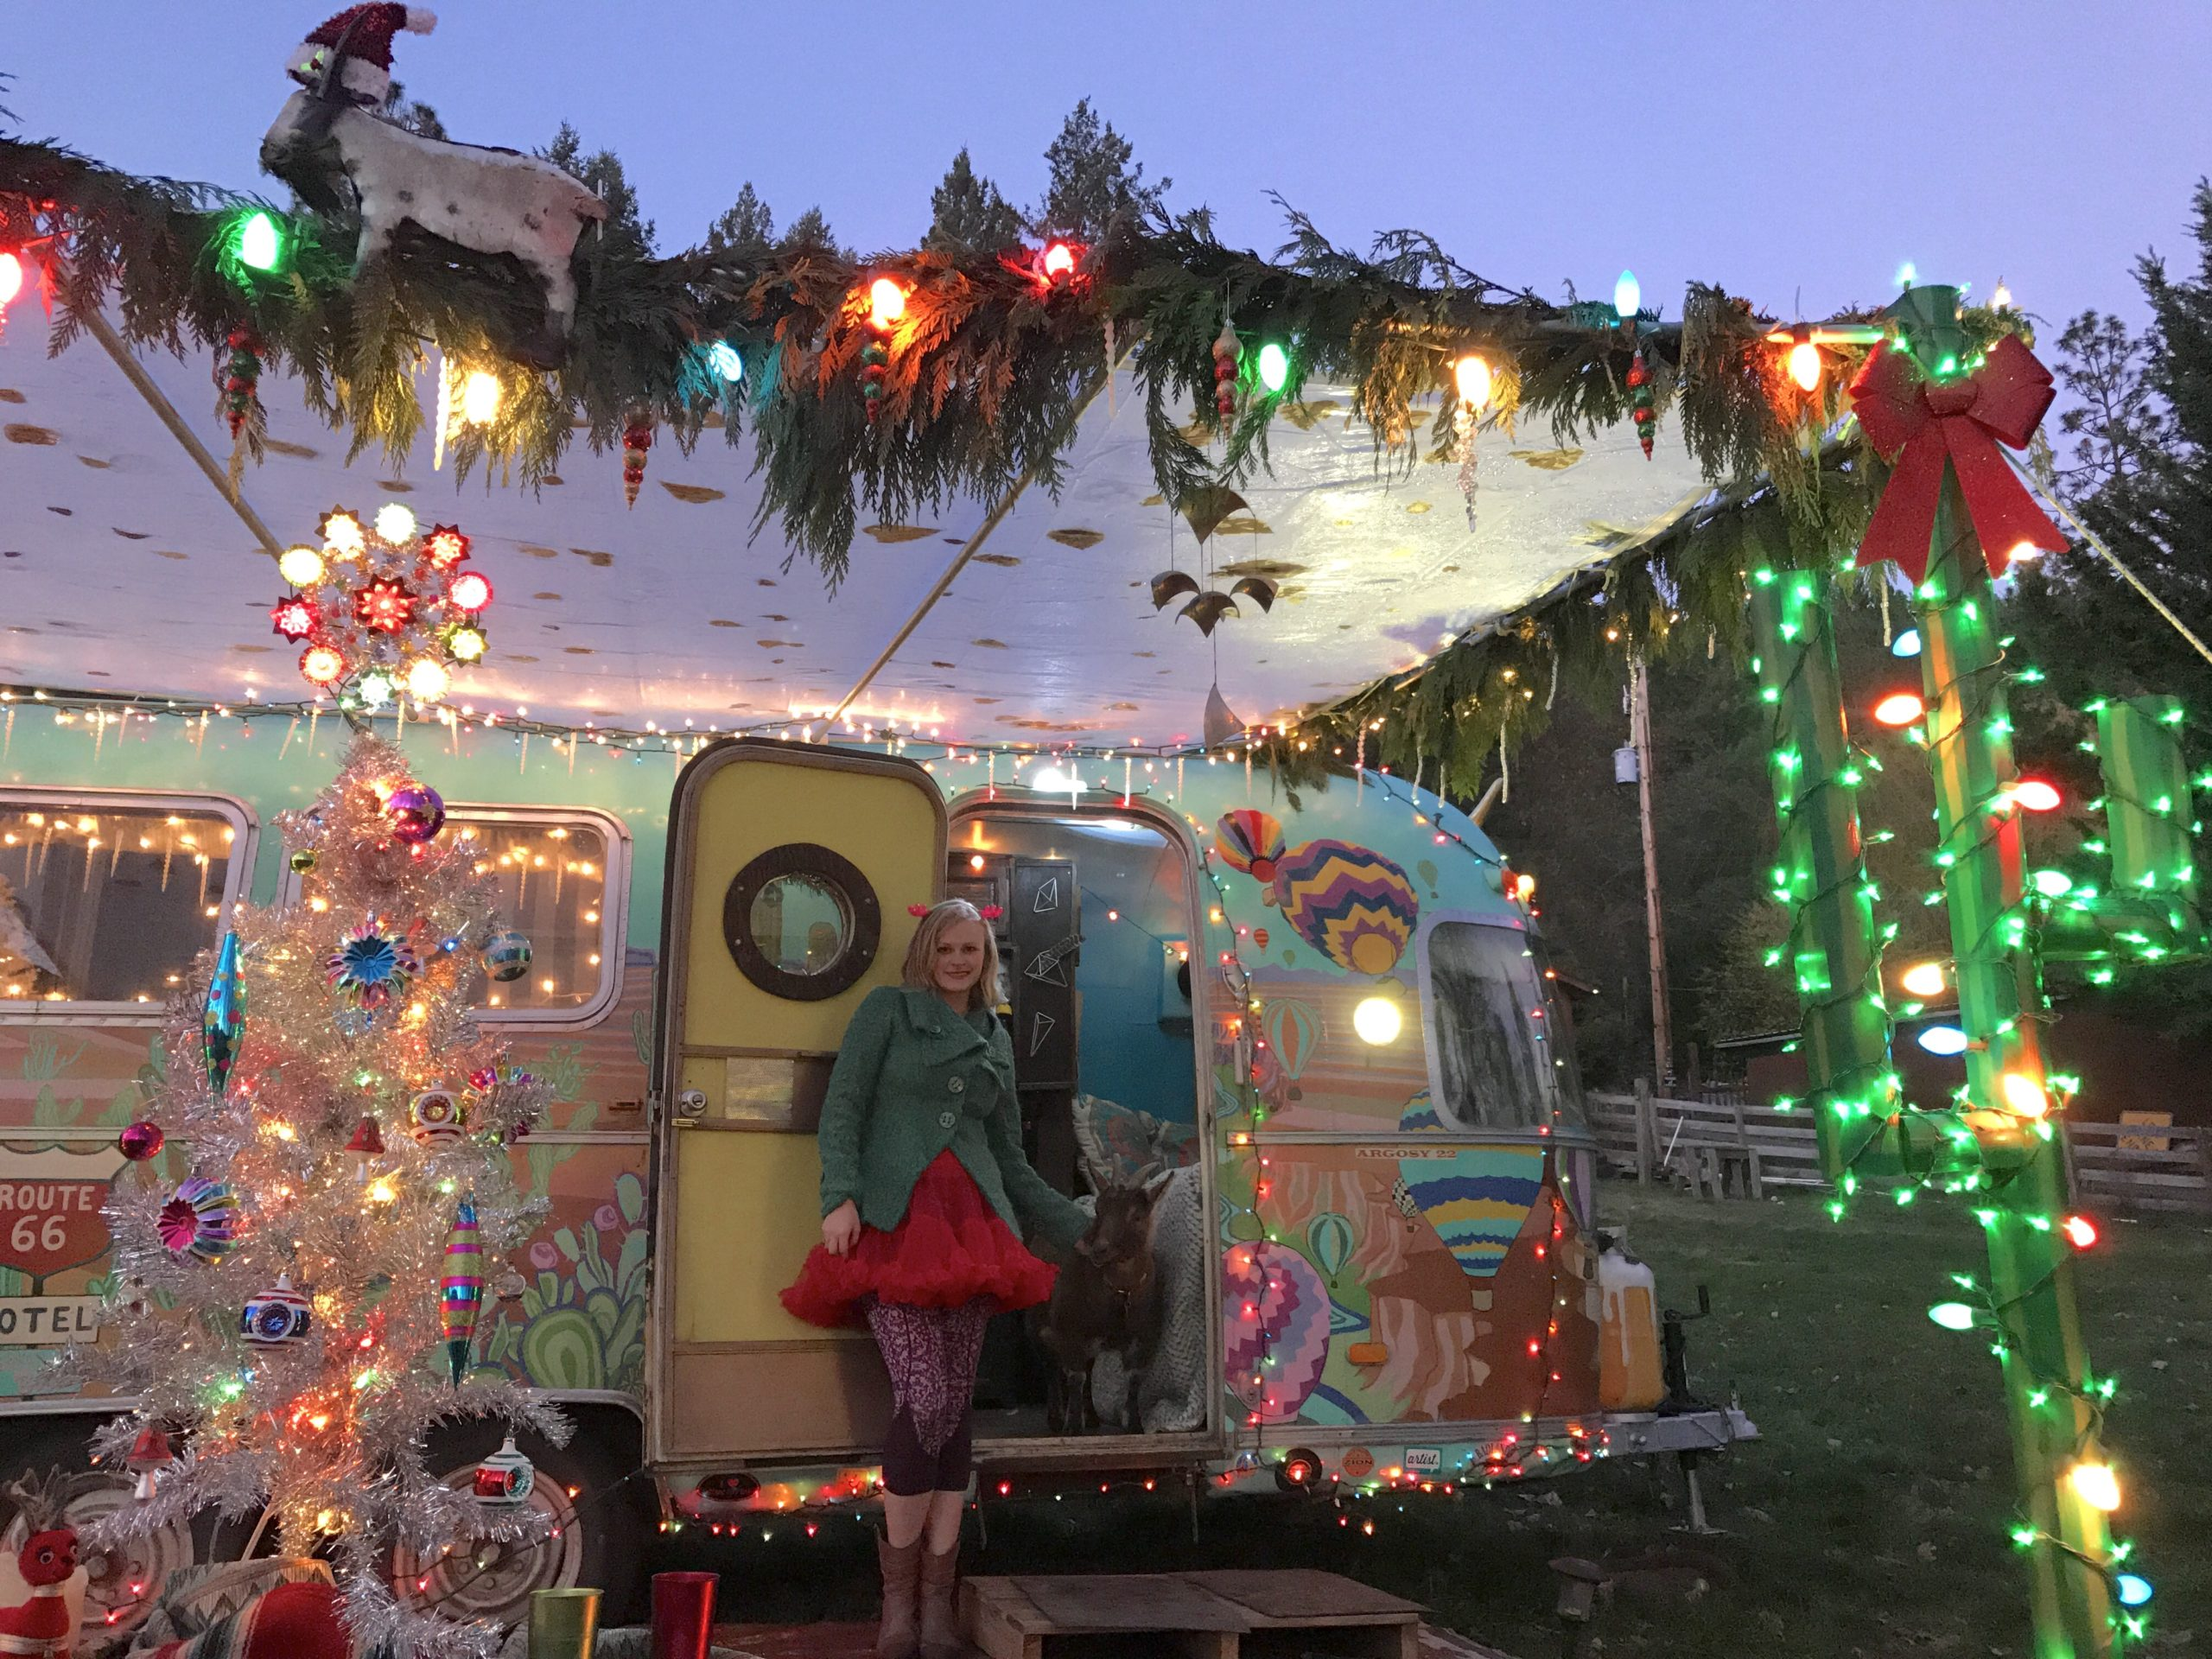 Woman with blonde hair dressed in Christmas colored skirt and coat posing in front of decorated travel trailer